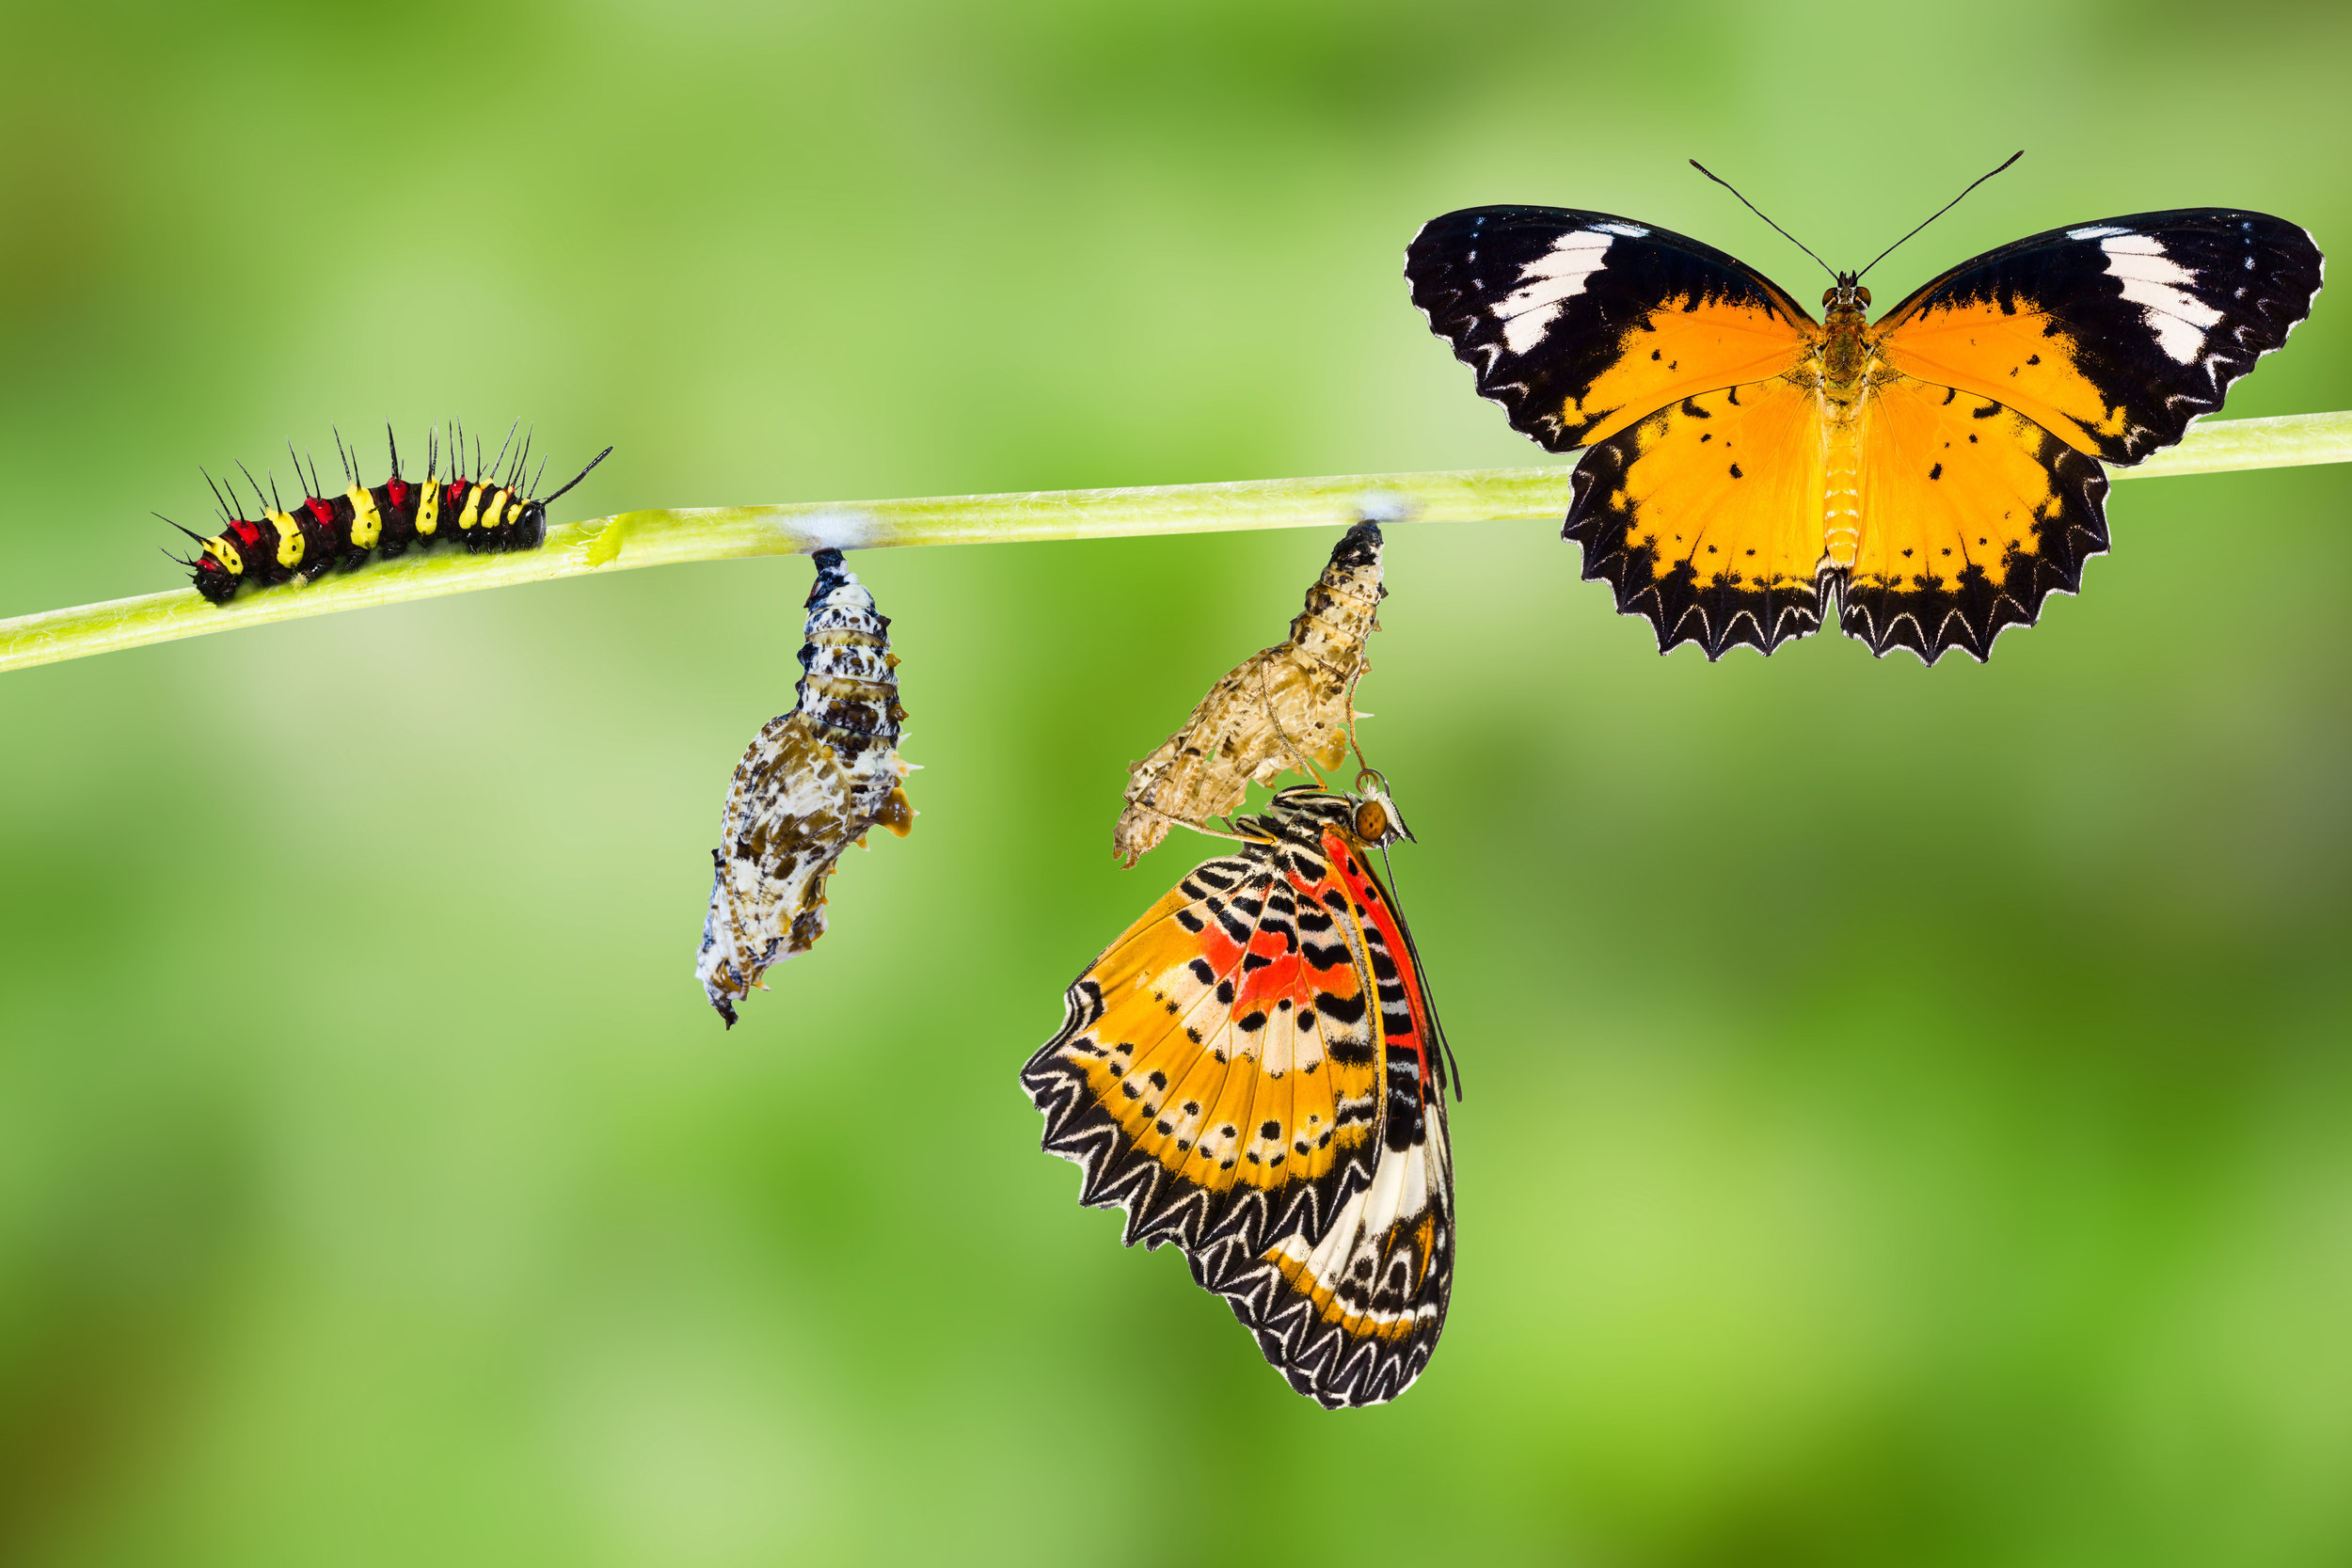 He believes that going through a death with him we will emerge as beautiful butterflies so that others will be drawn to the same life. -